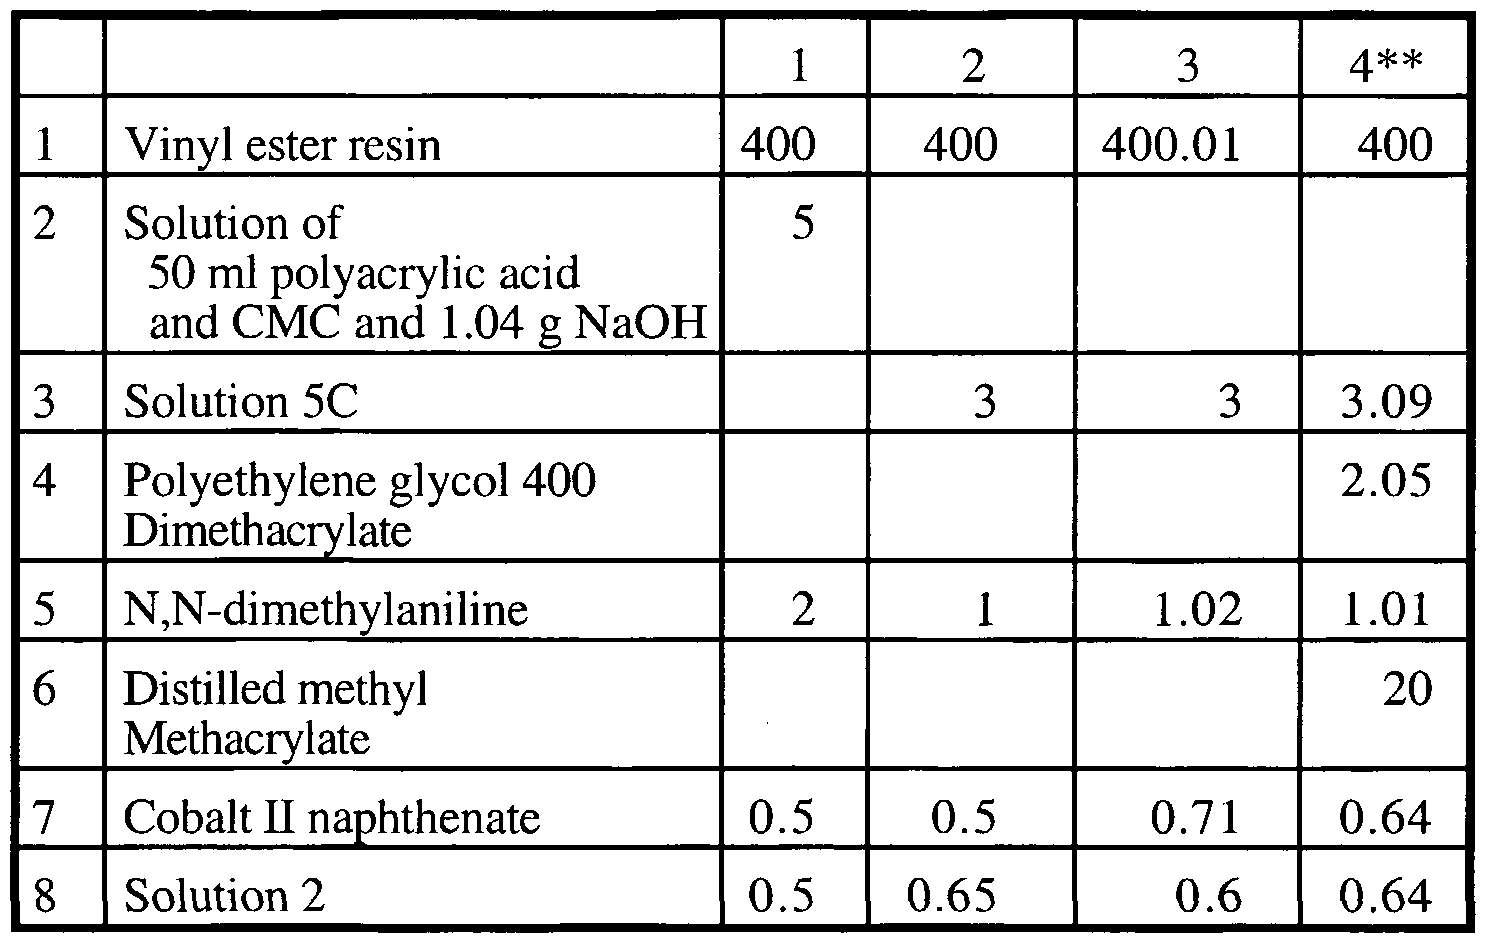 Wo2001018102a1 Novel Polymer Additives For Forming Objects Details About Pcb Printed Circuit Repair 02ml Silver Conductive Paste Figure Imgf000064 0002